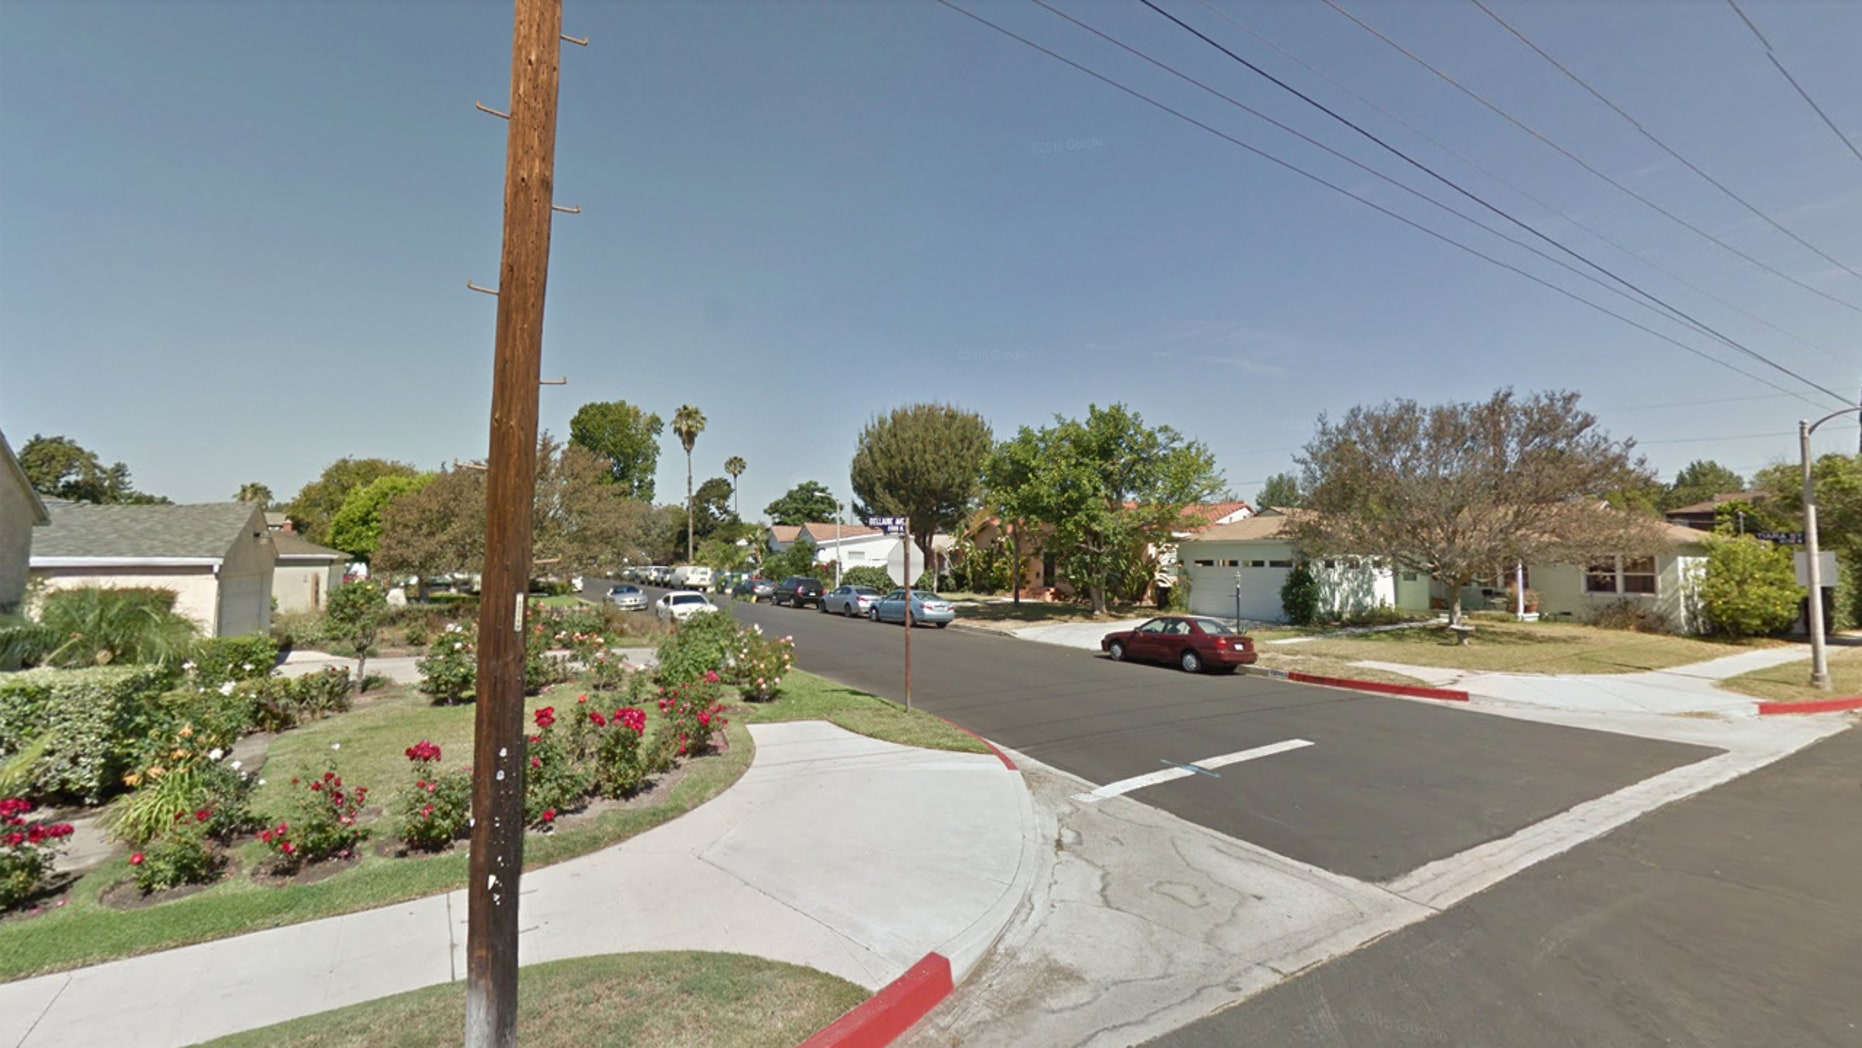 Several people were injured in a shooting at a house party on West Tiara Street in North Hollywood, Calif. on Sunday.